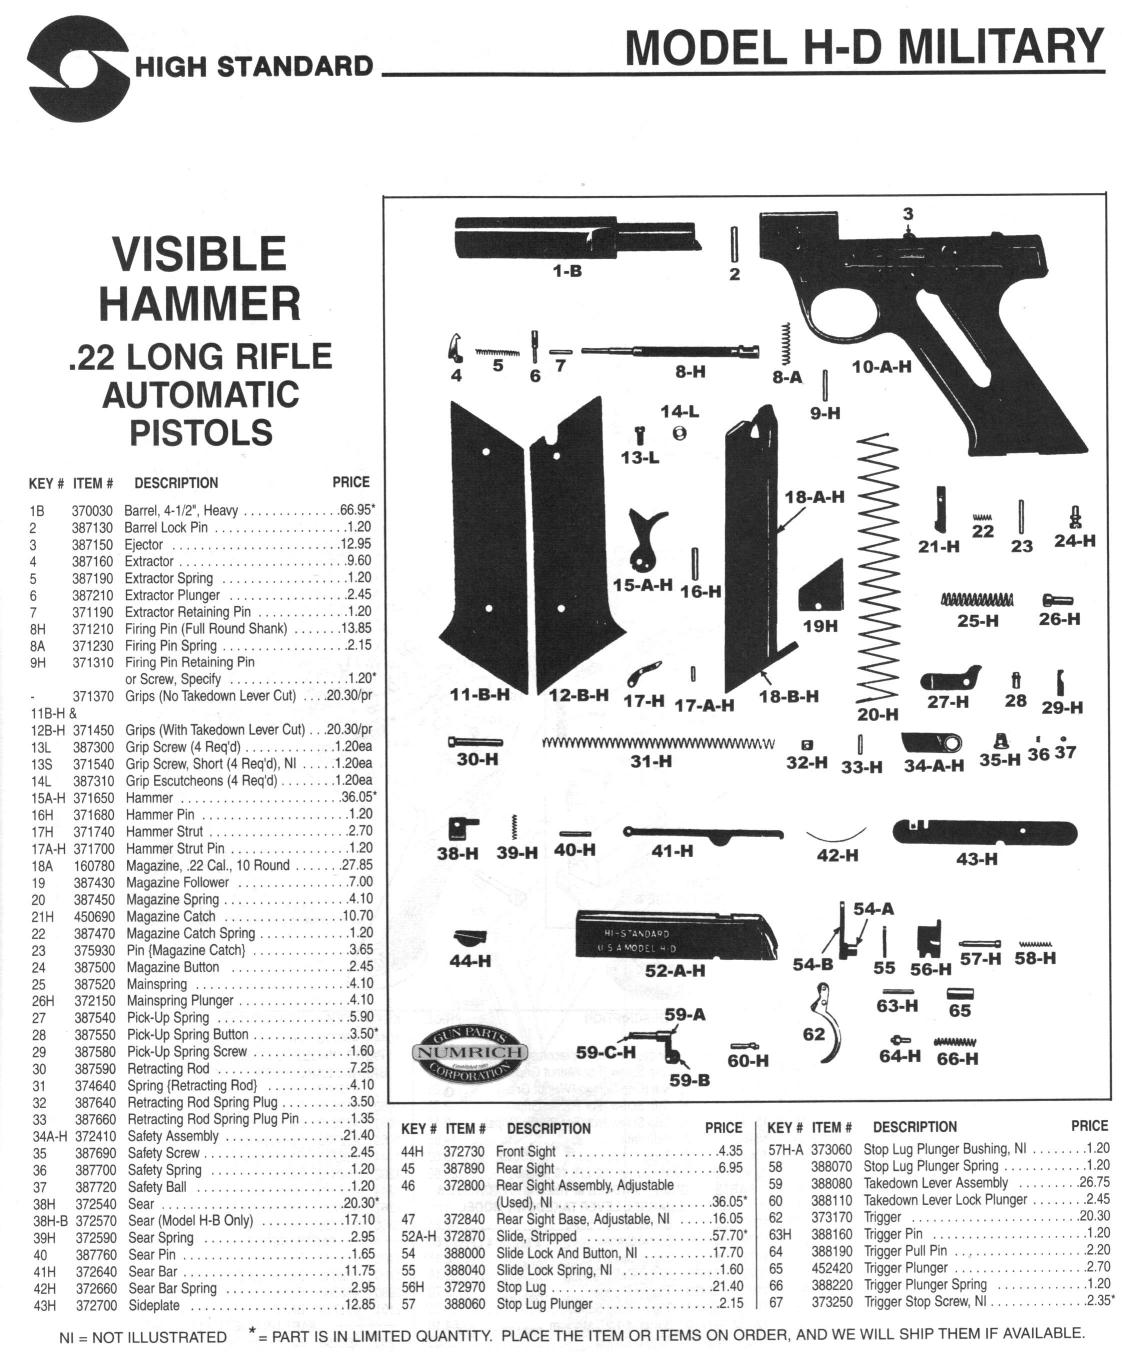 Shooting With Hobie Each Of The 60 M1 Garand Parts From Az Images Diagrams And